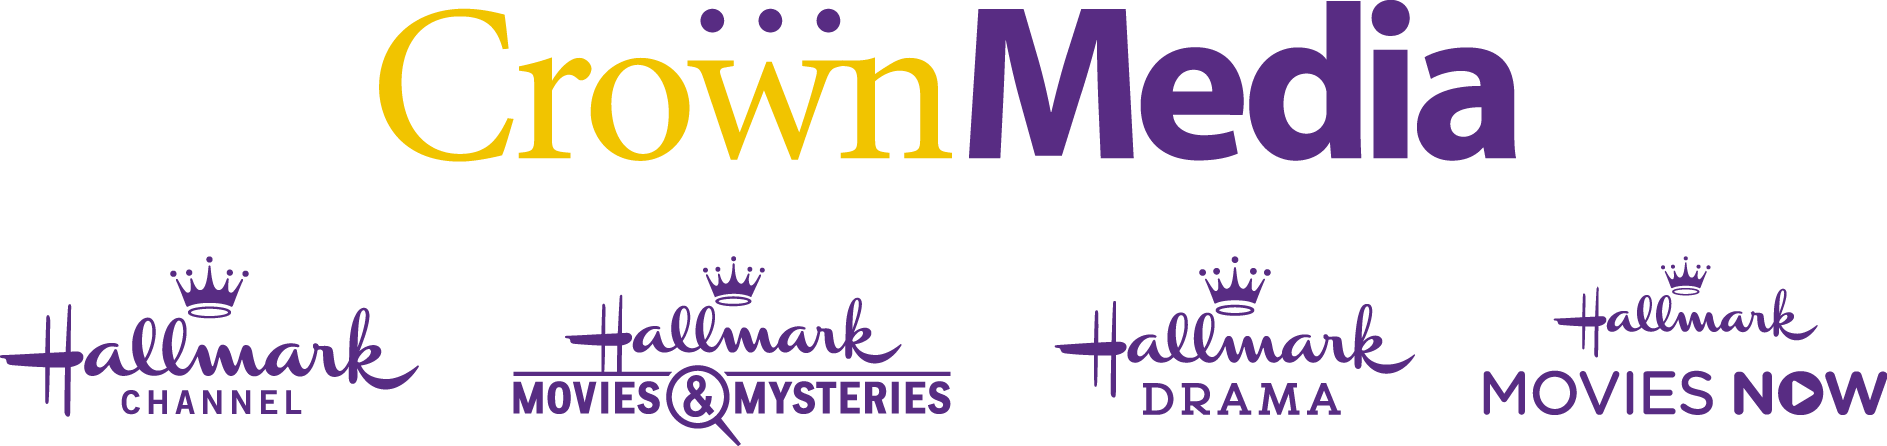 Crown Media logo